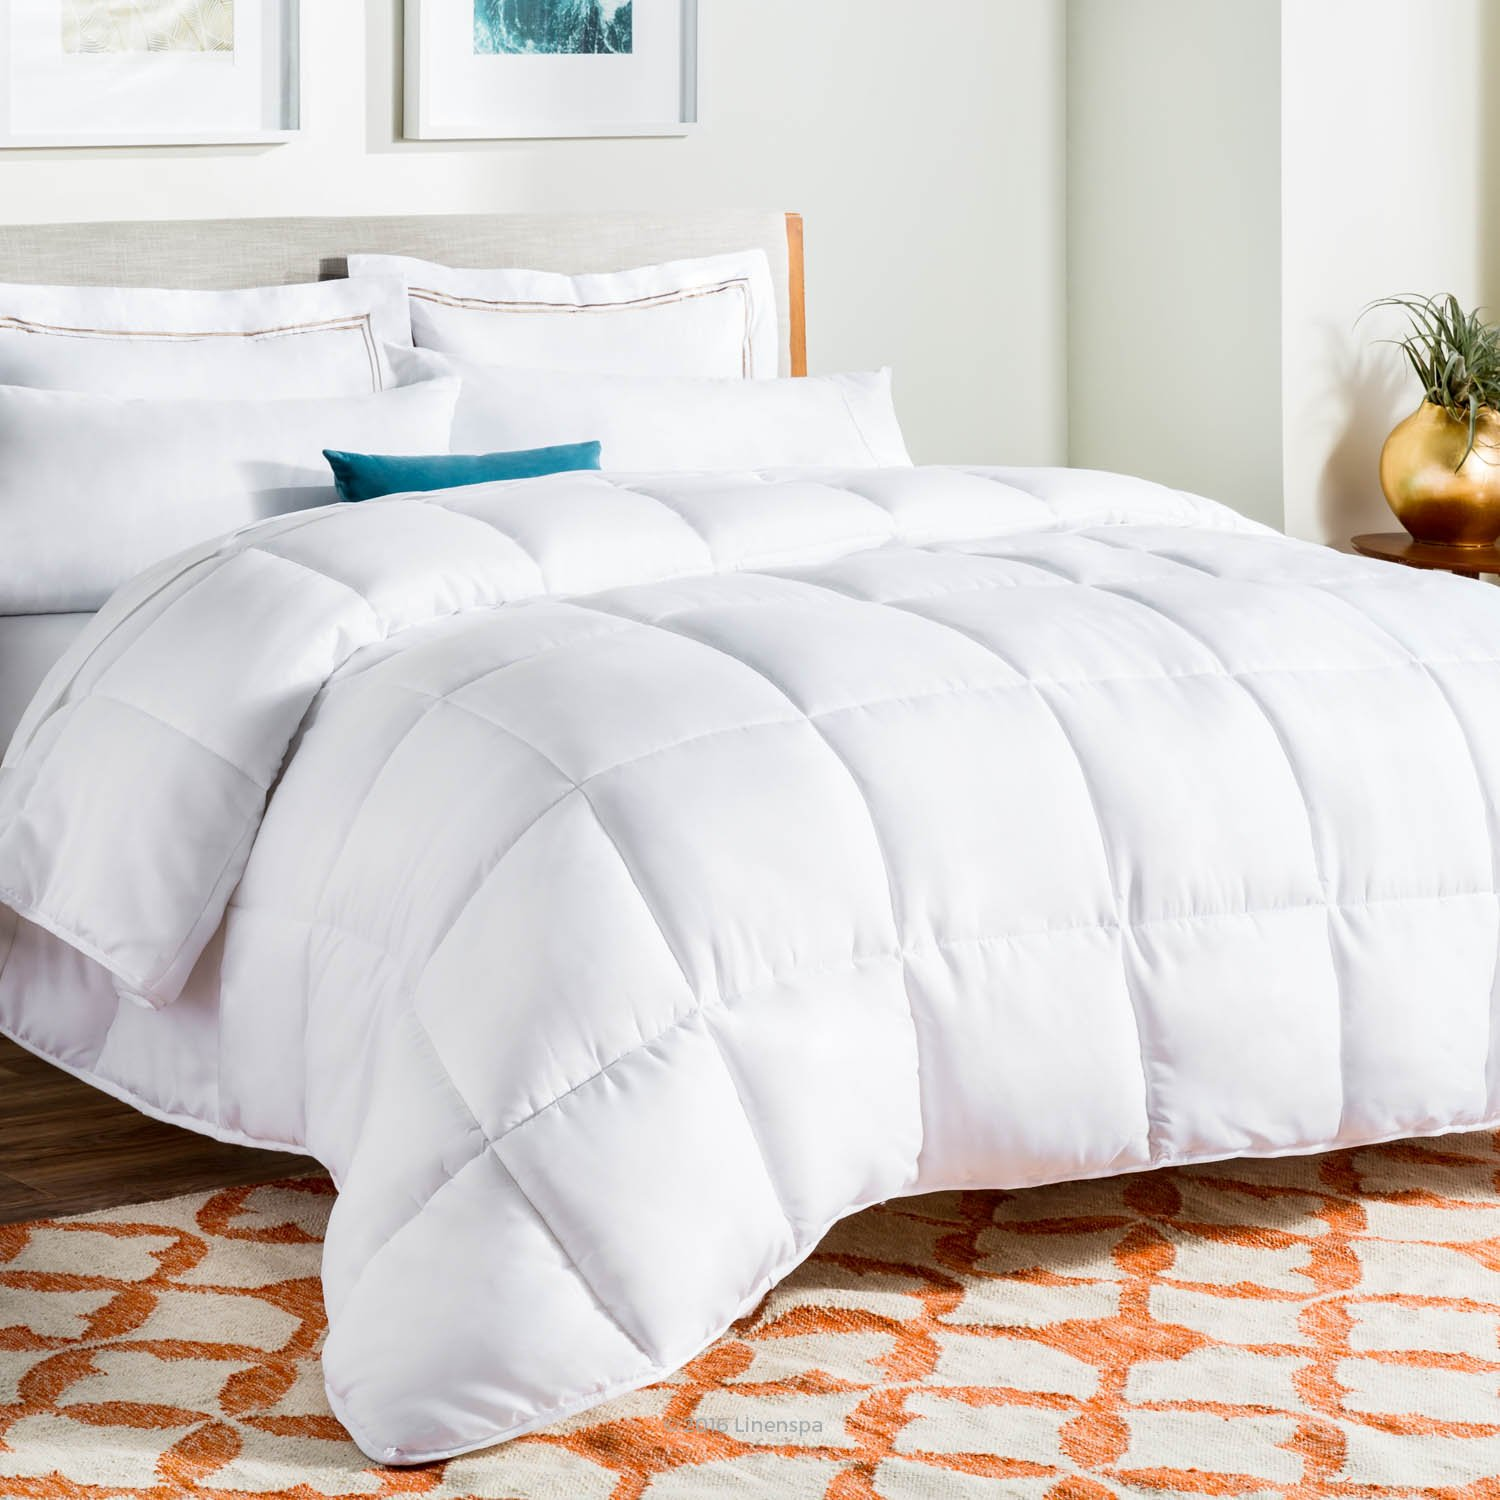 comforters would cottage ruffle duvet duvets set the love i cover vintage pin from full bloom and comforter